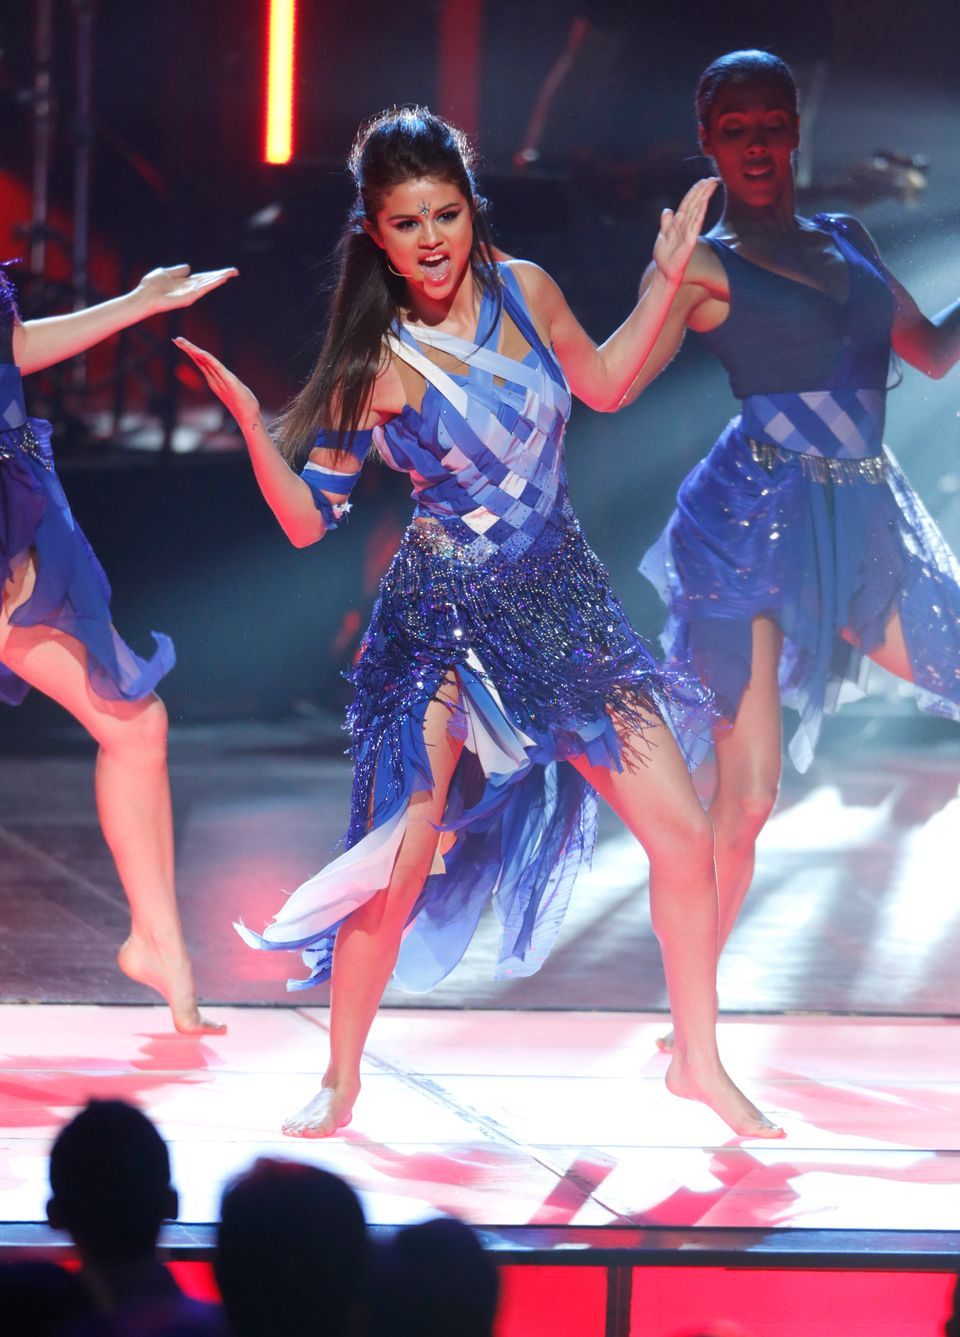 Selena Gomez performs during the Radio Disney Music Awards at the Nokia Theatre on Saturday, April 27, 2013 in Los Angeles. (